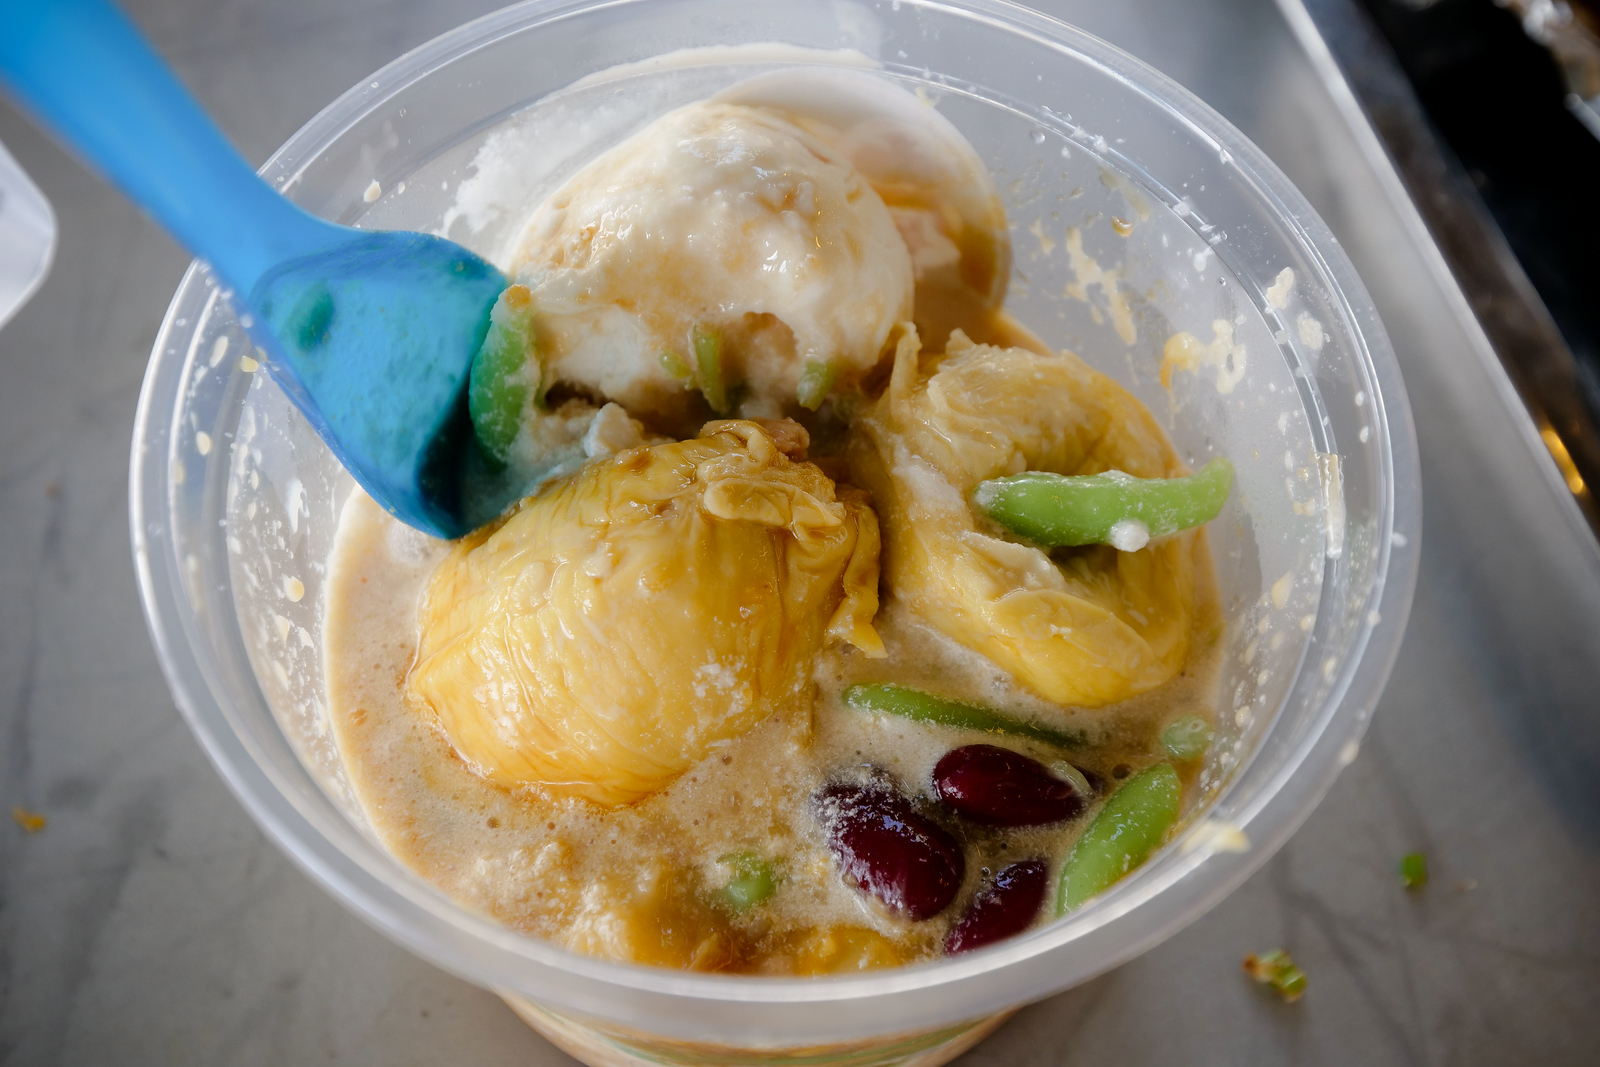 An amazing dessert, also full of durian. This durian cendol at Gobang Maju was amazing